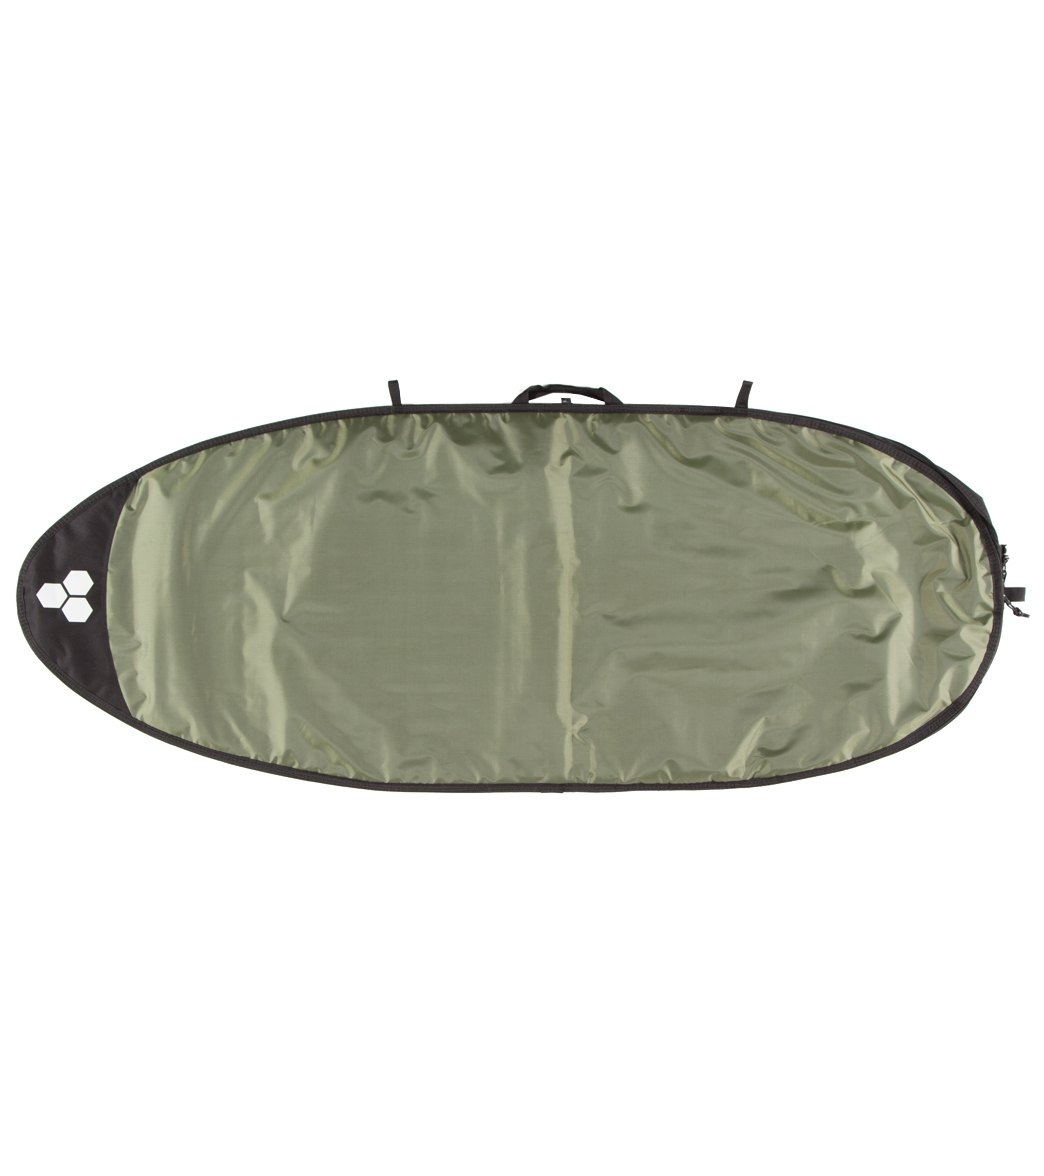 Channel Islands Feather Lite Surfboard Bag at SwimOutlet